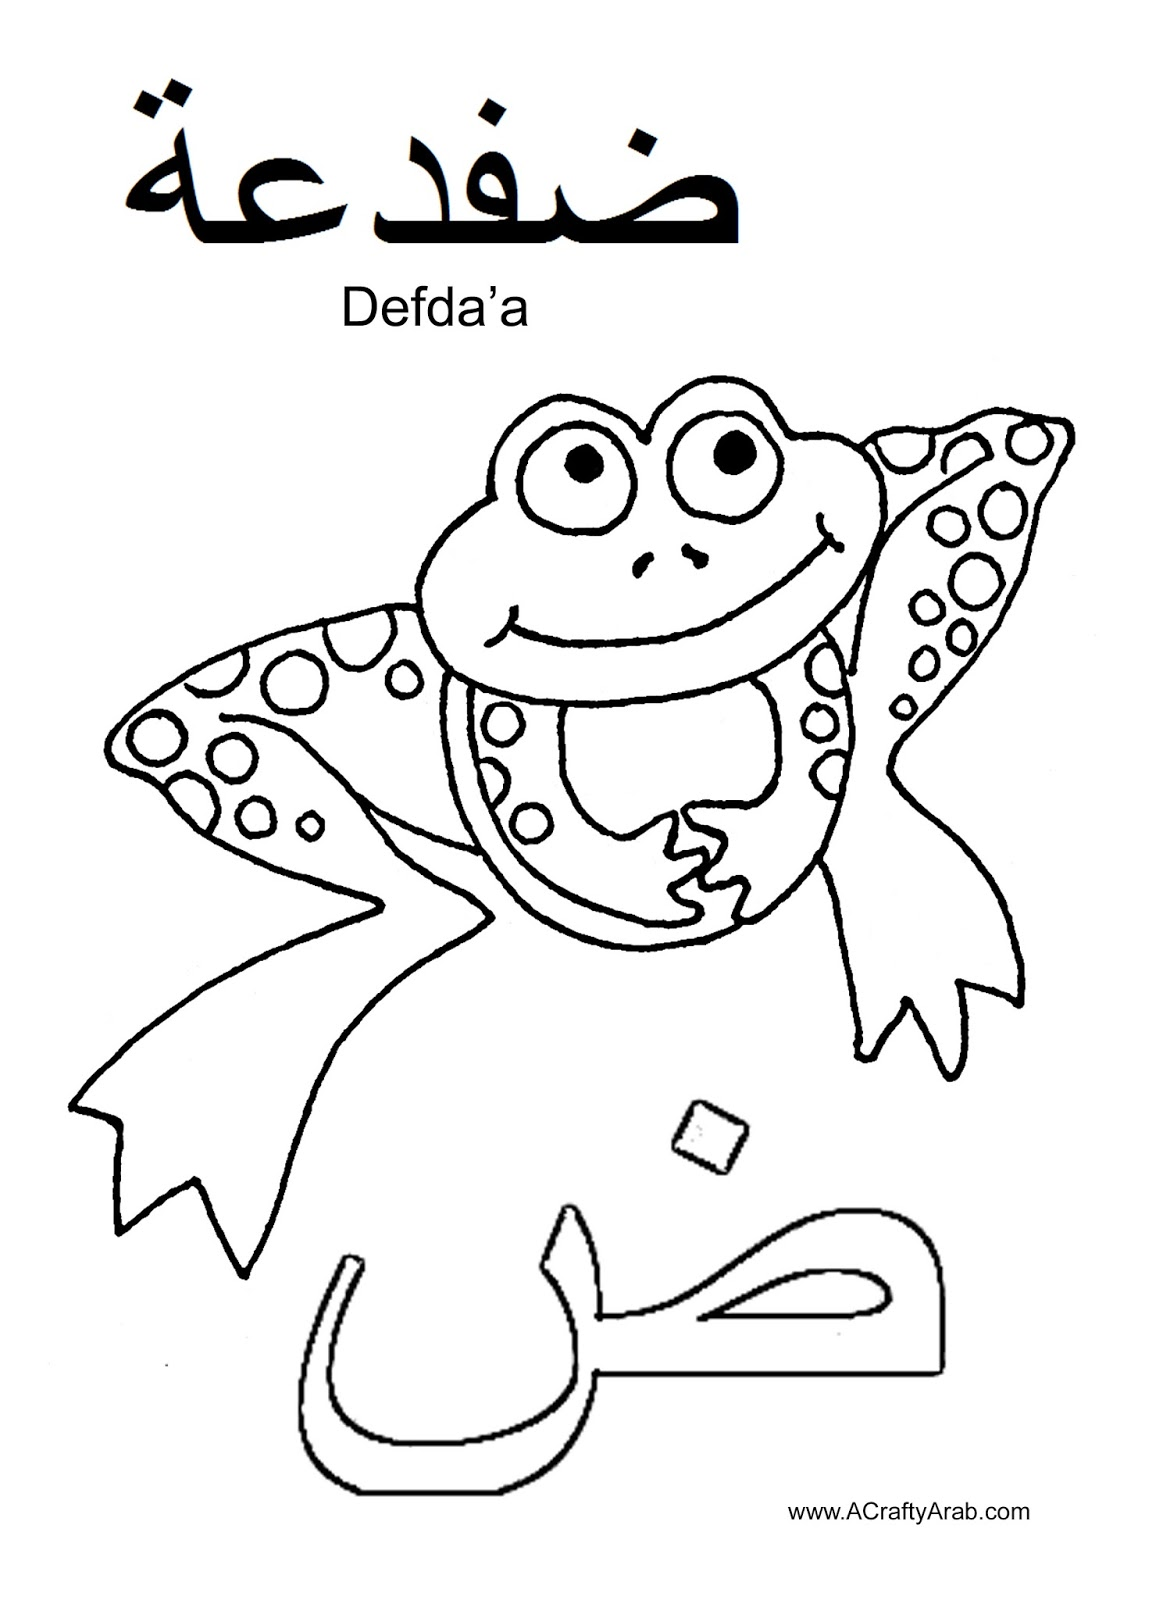 A Crafty Arab: Arabic Alphabet coloring pages...Dhad is